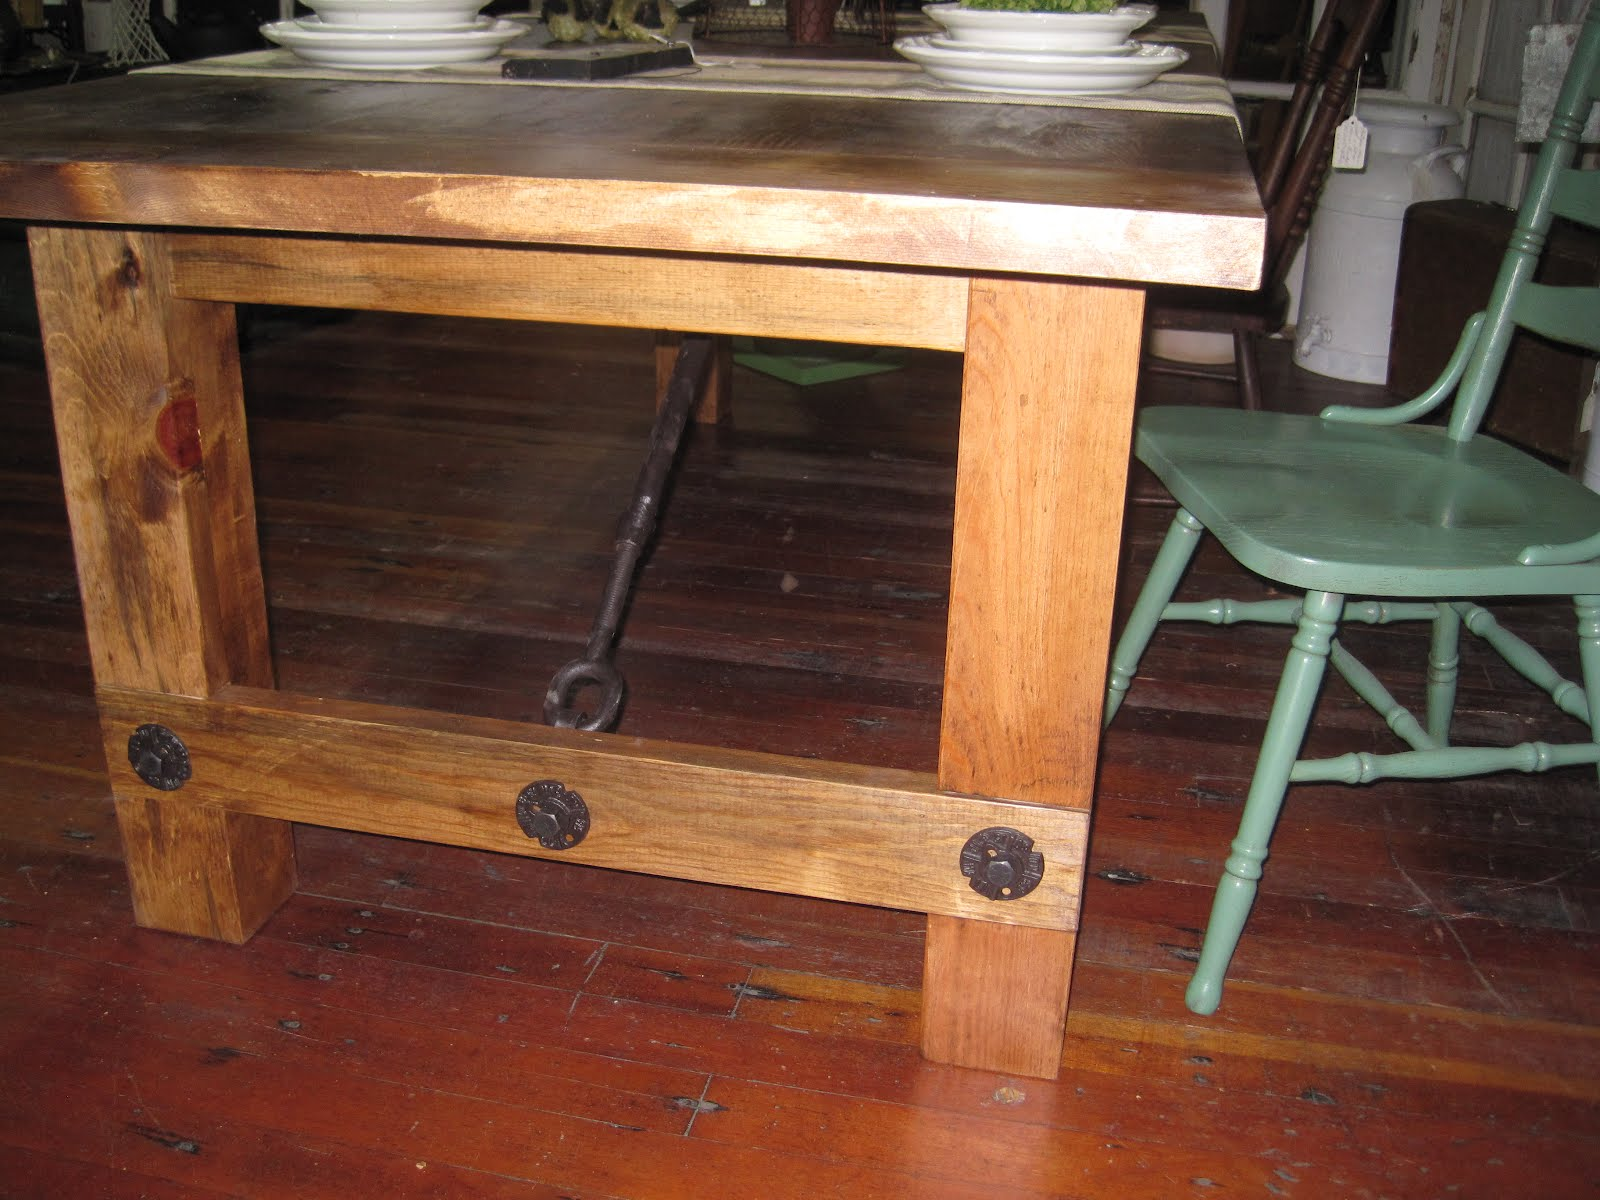 The Industrial Rustic Look Truly Adds Such Special Detail To The Table. To  Complete This Table In Style, Matching Handcrafted Benches Are In The Works.